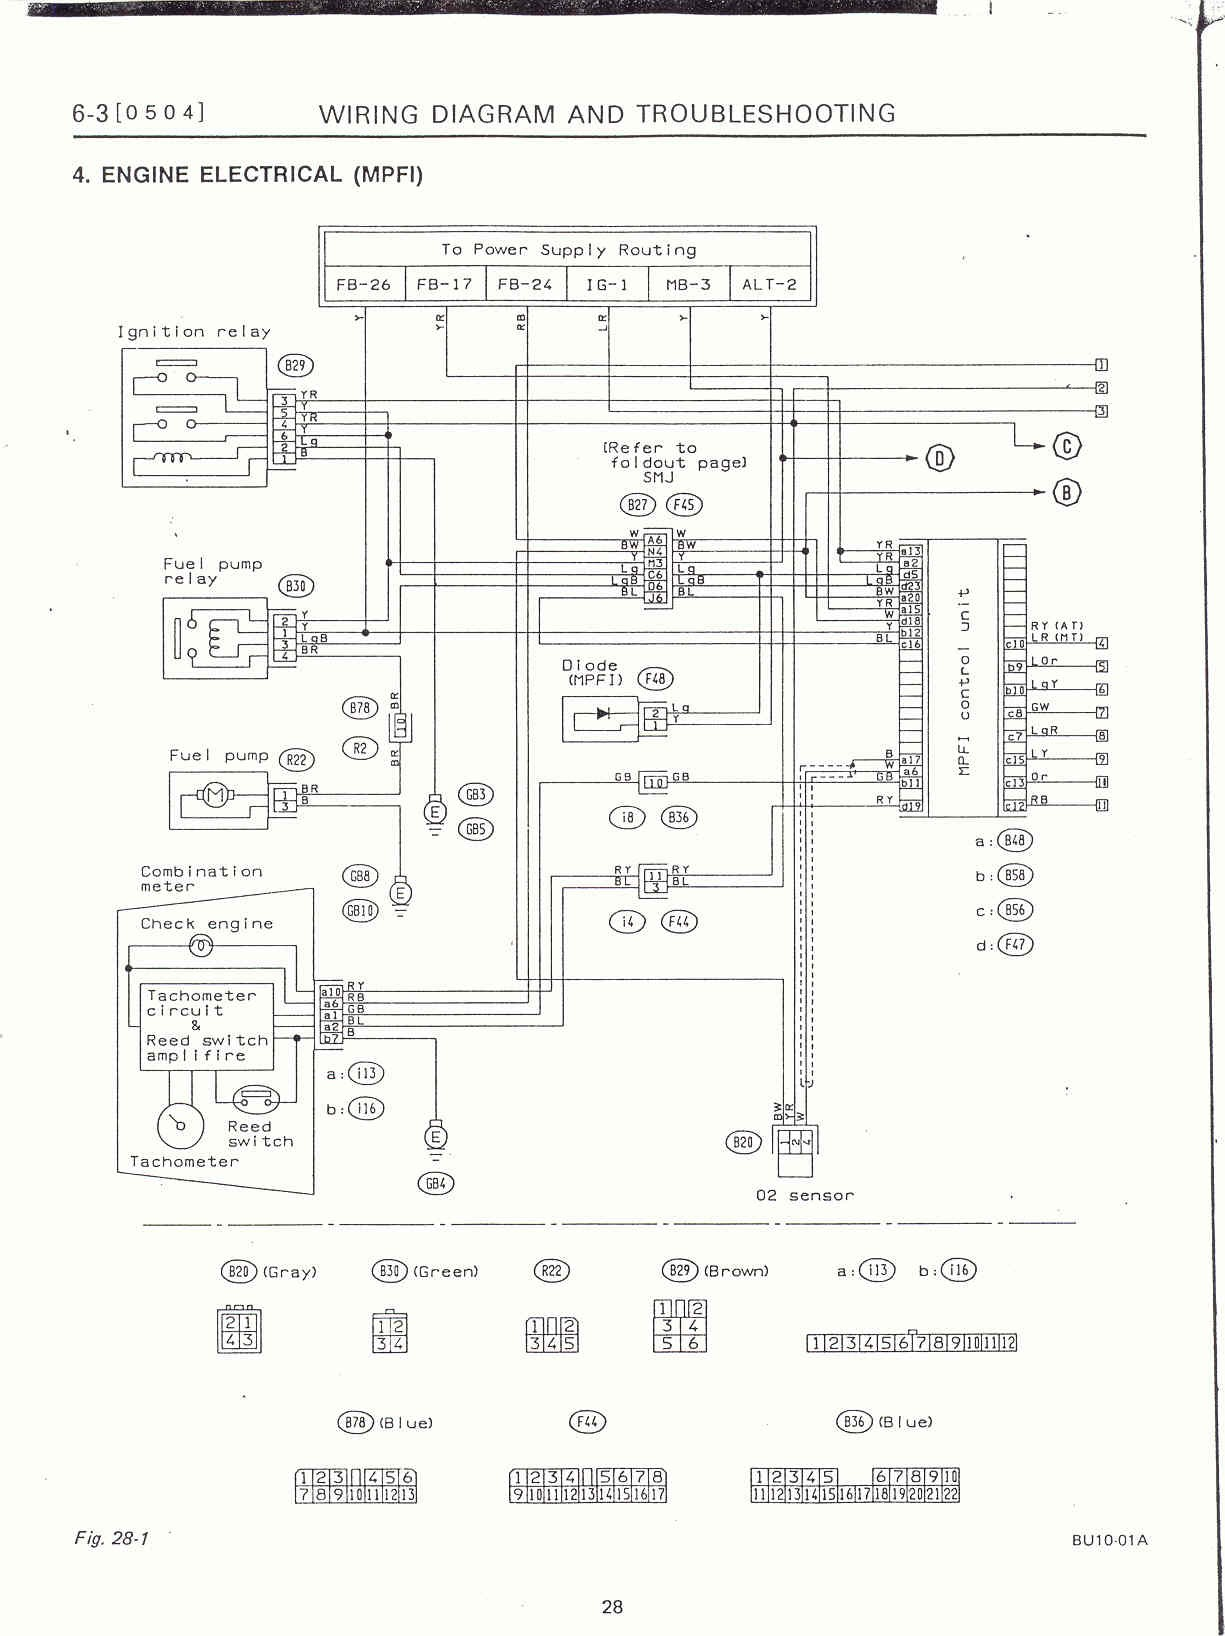 Subaru Legacy Engine Diagram Surrealmirage Subaru Legacy Swap Electrical Info Notes In Wiring Of Subaru Legacy Engine Diagram on 76 Evinrude Wiring Diagram